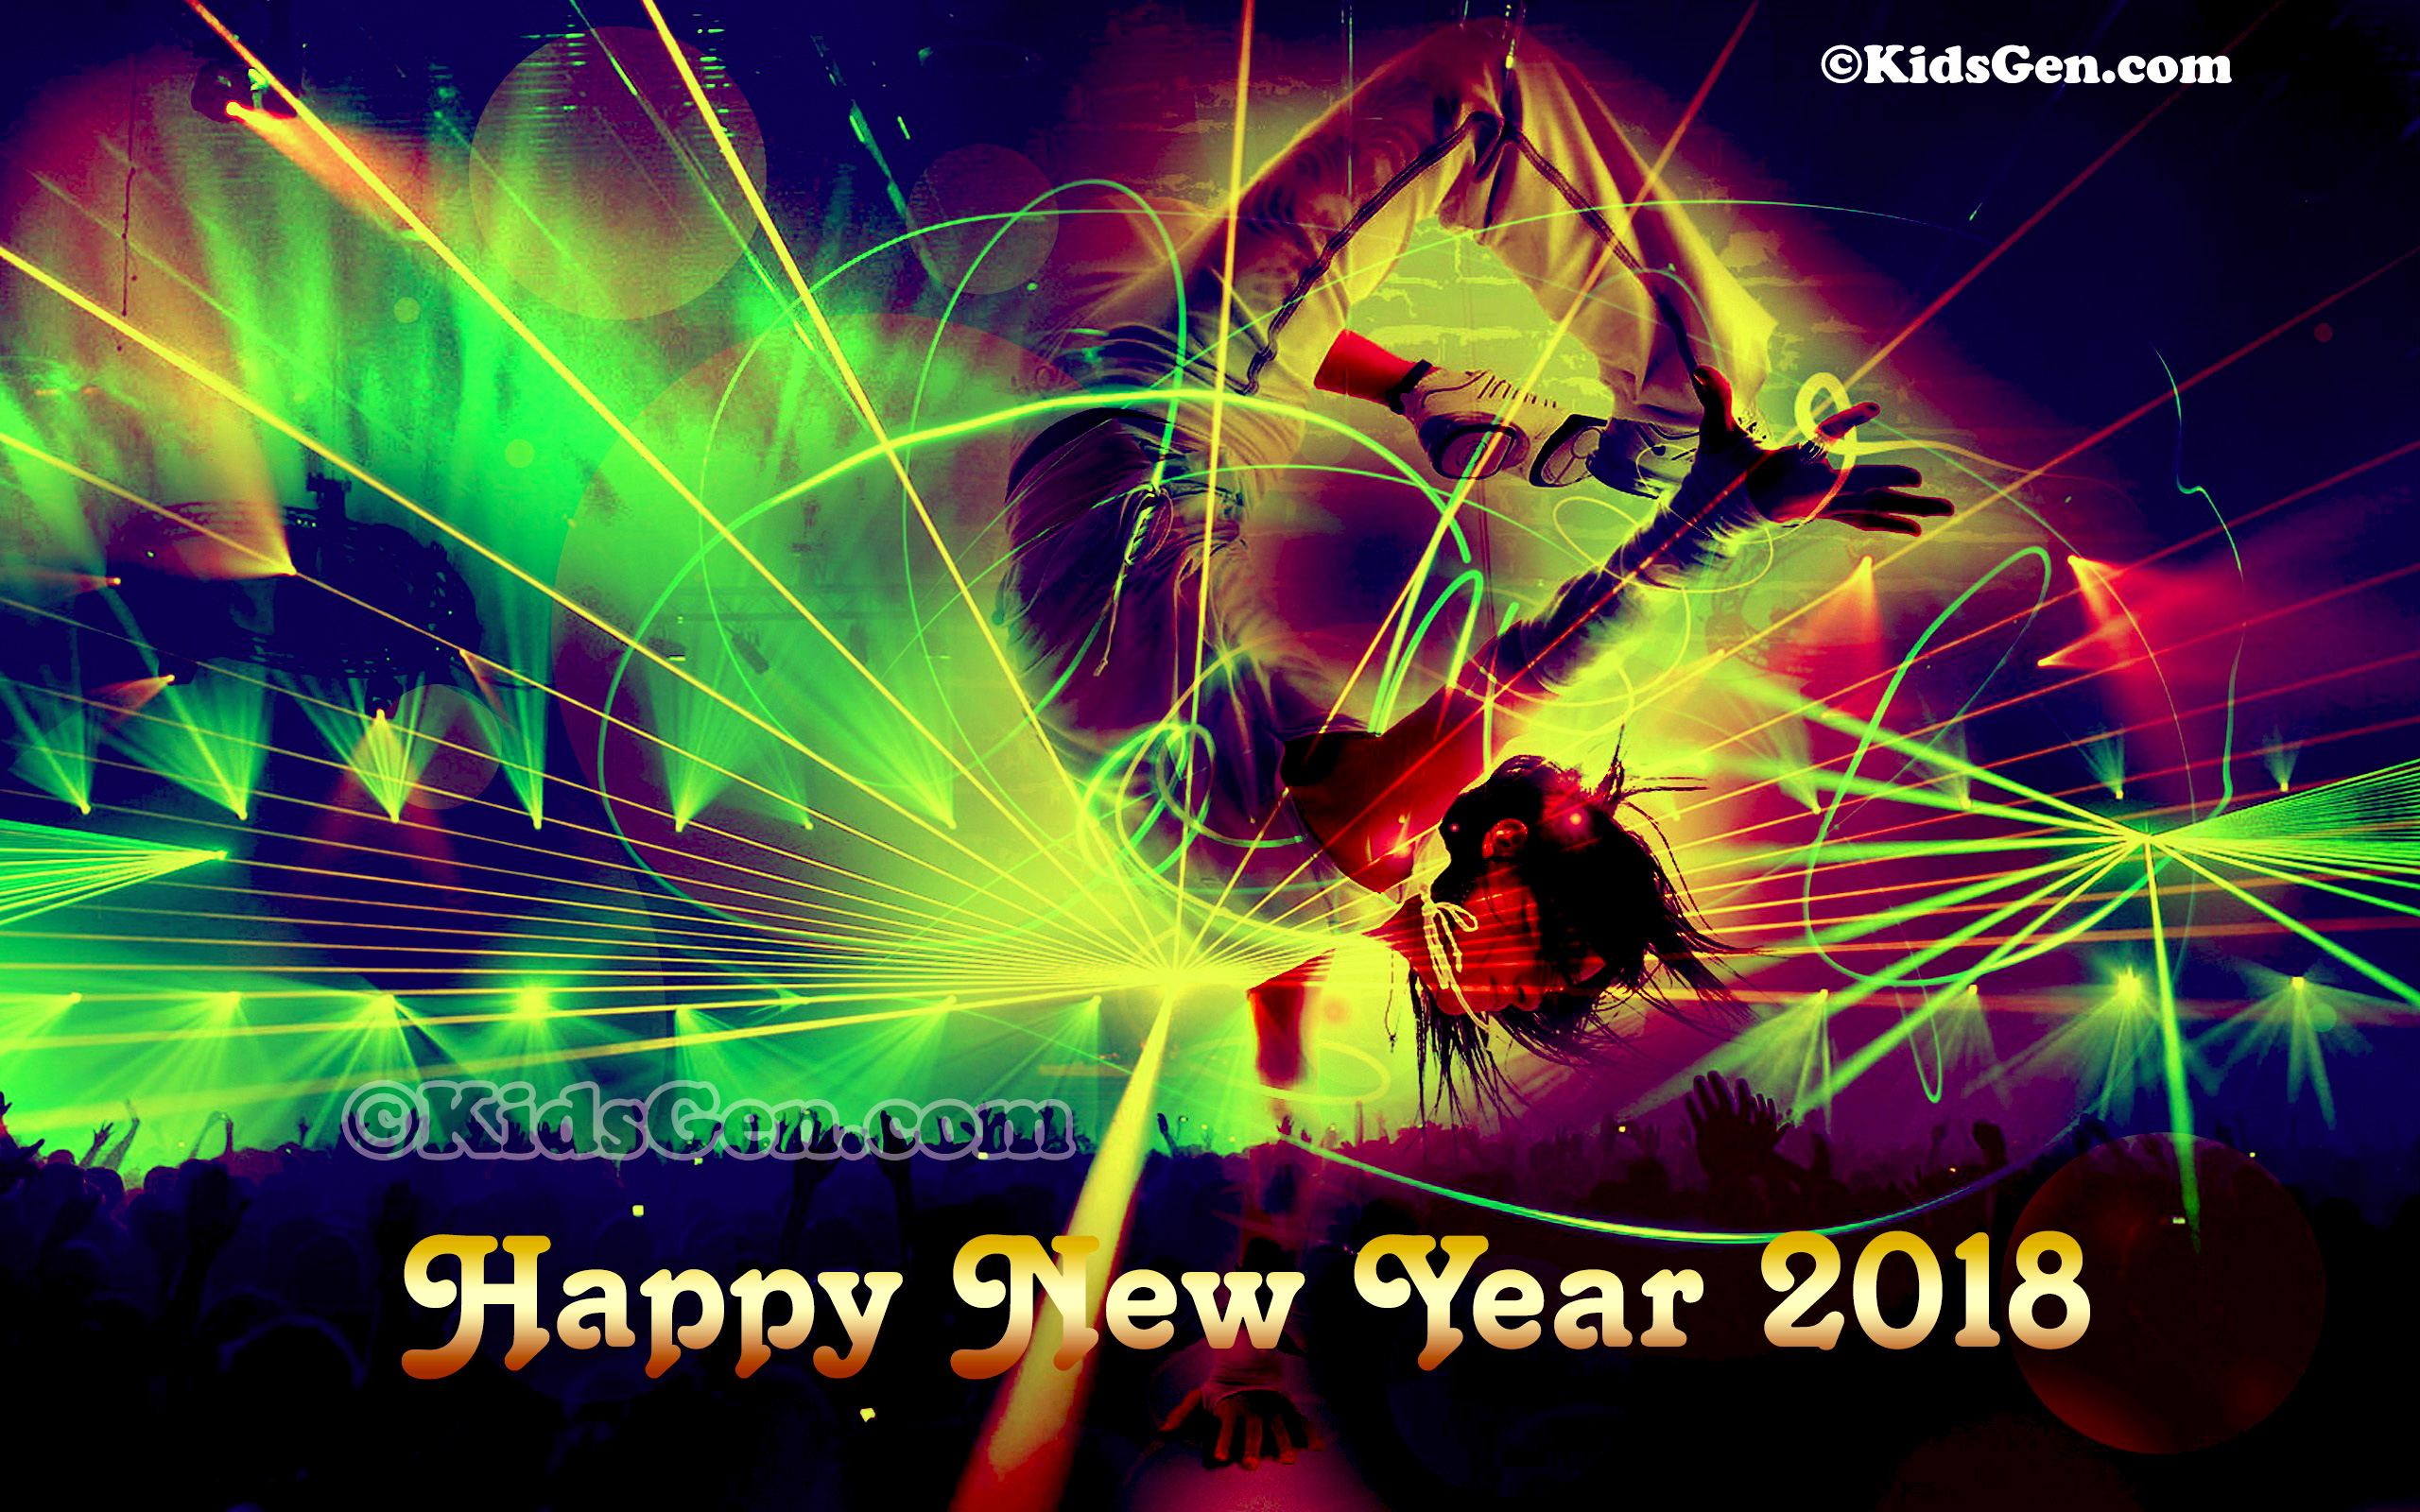 New Year Wallpapers for Desktop, Widescreen, Mobile and High Definition